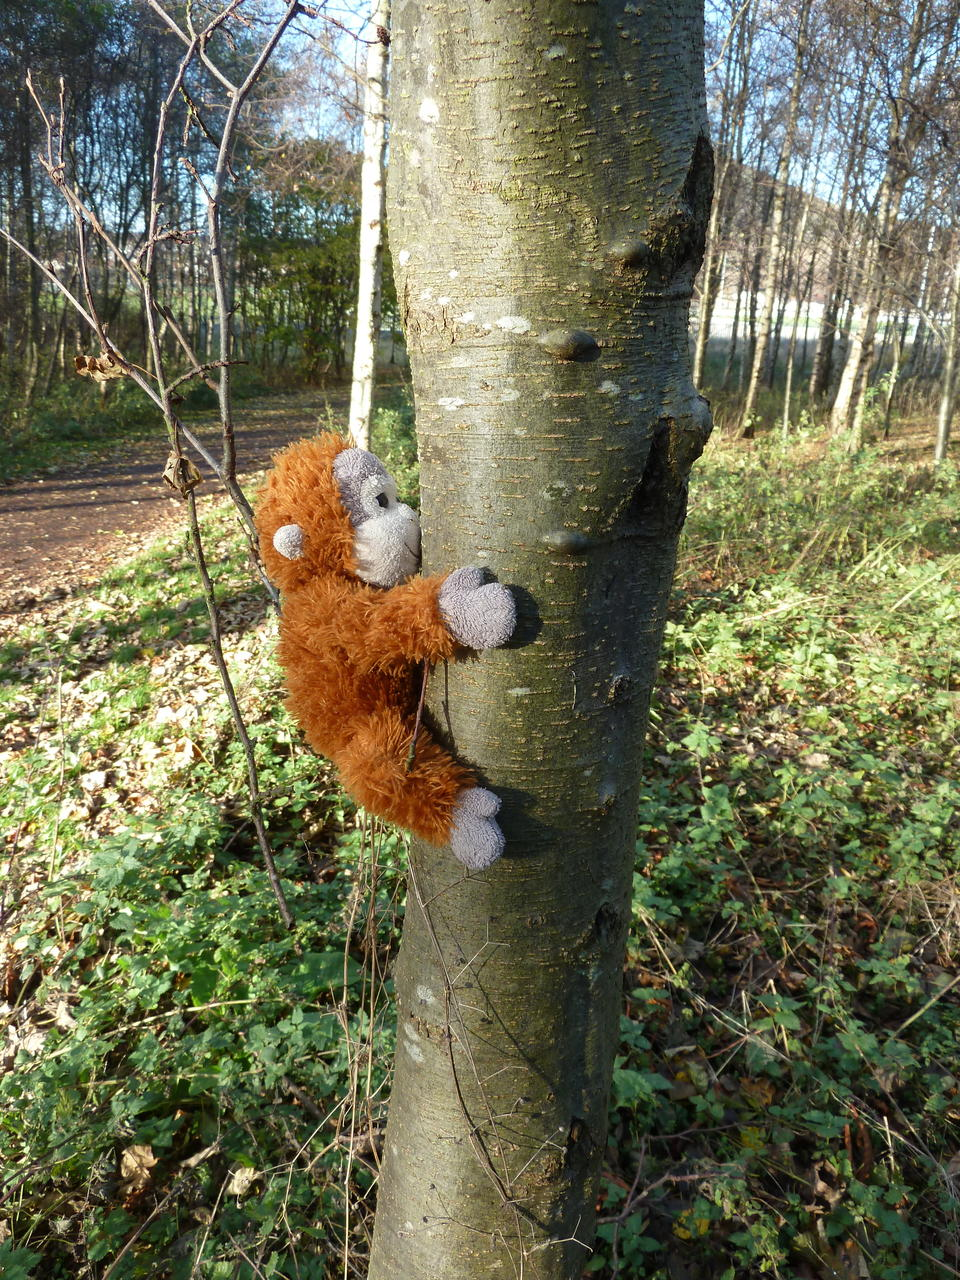 Pongo (a soft toy orang-utan) is climbing a tree